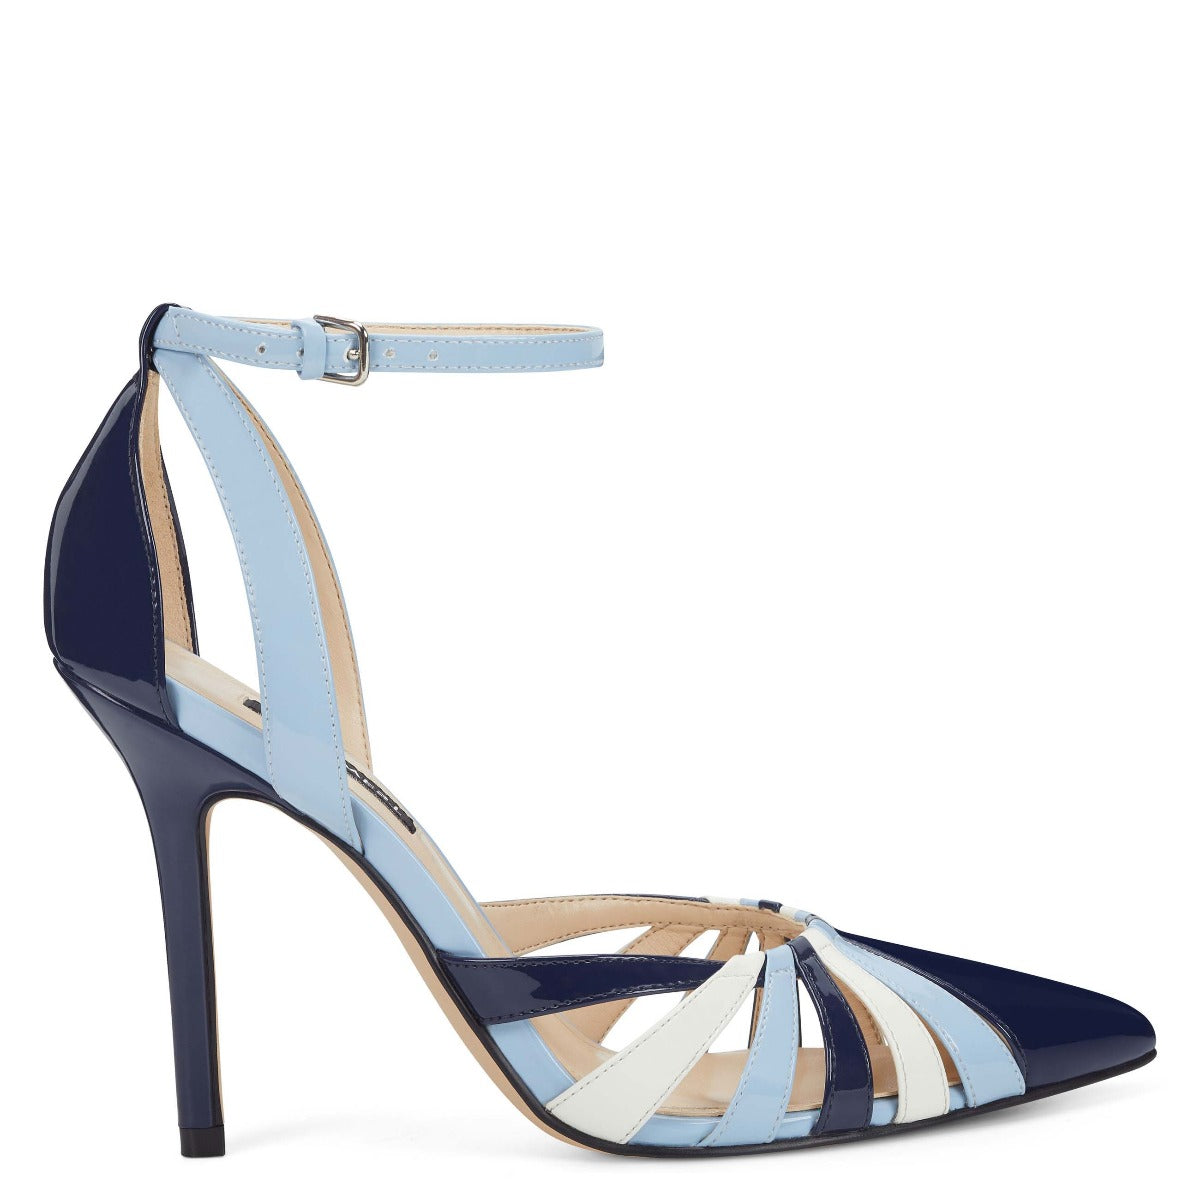 Bekki Ankle Strap Pumps